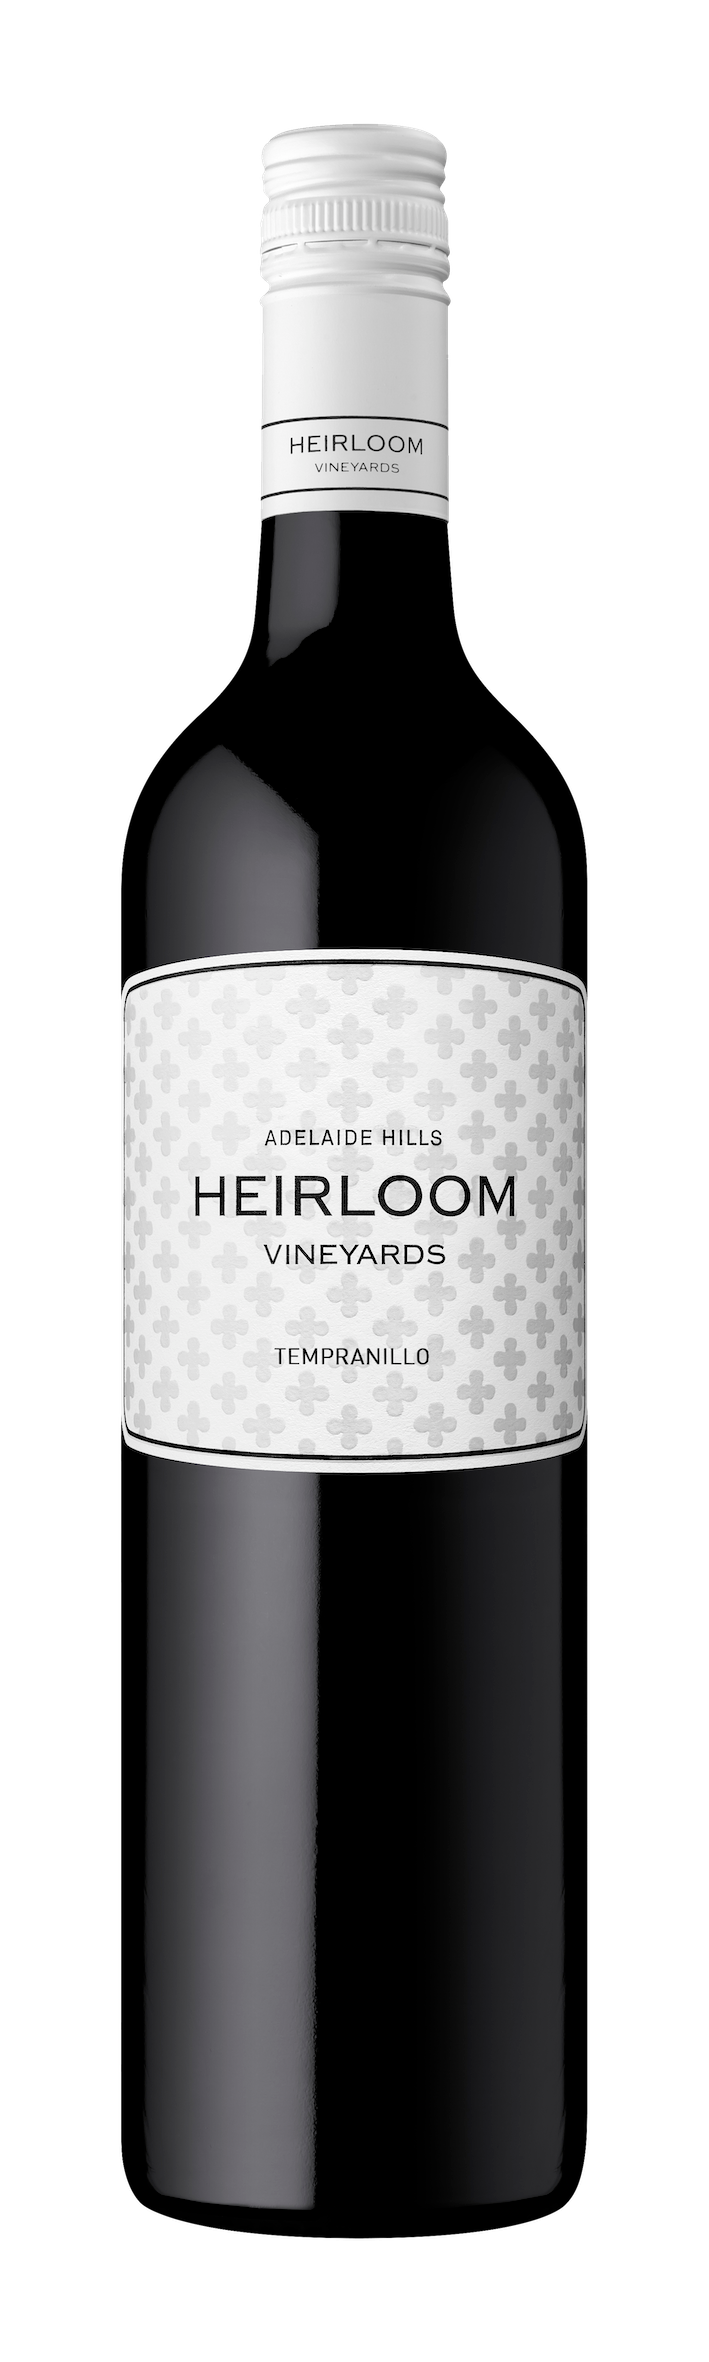 2019 Heirloom Vineyards Adelaide Hills Tempranillo